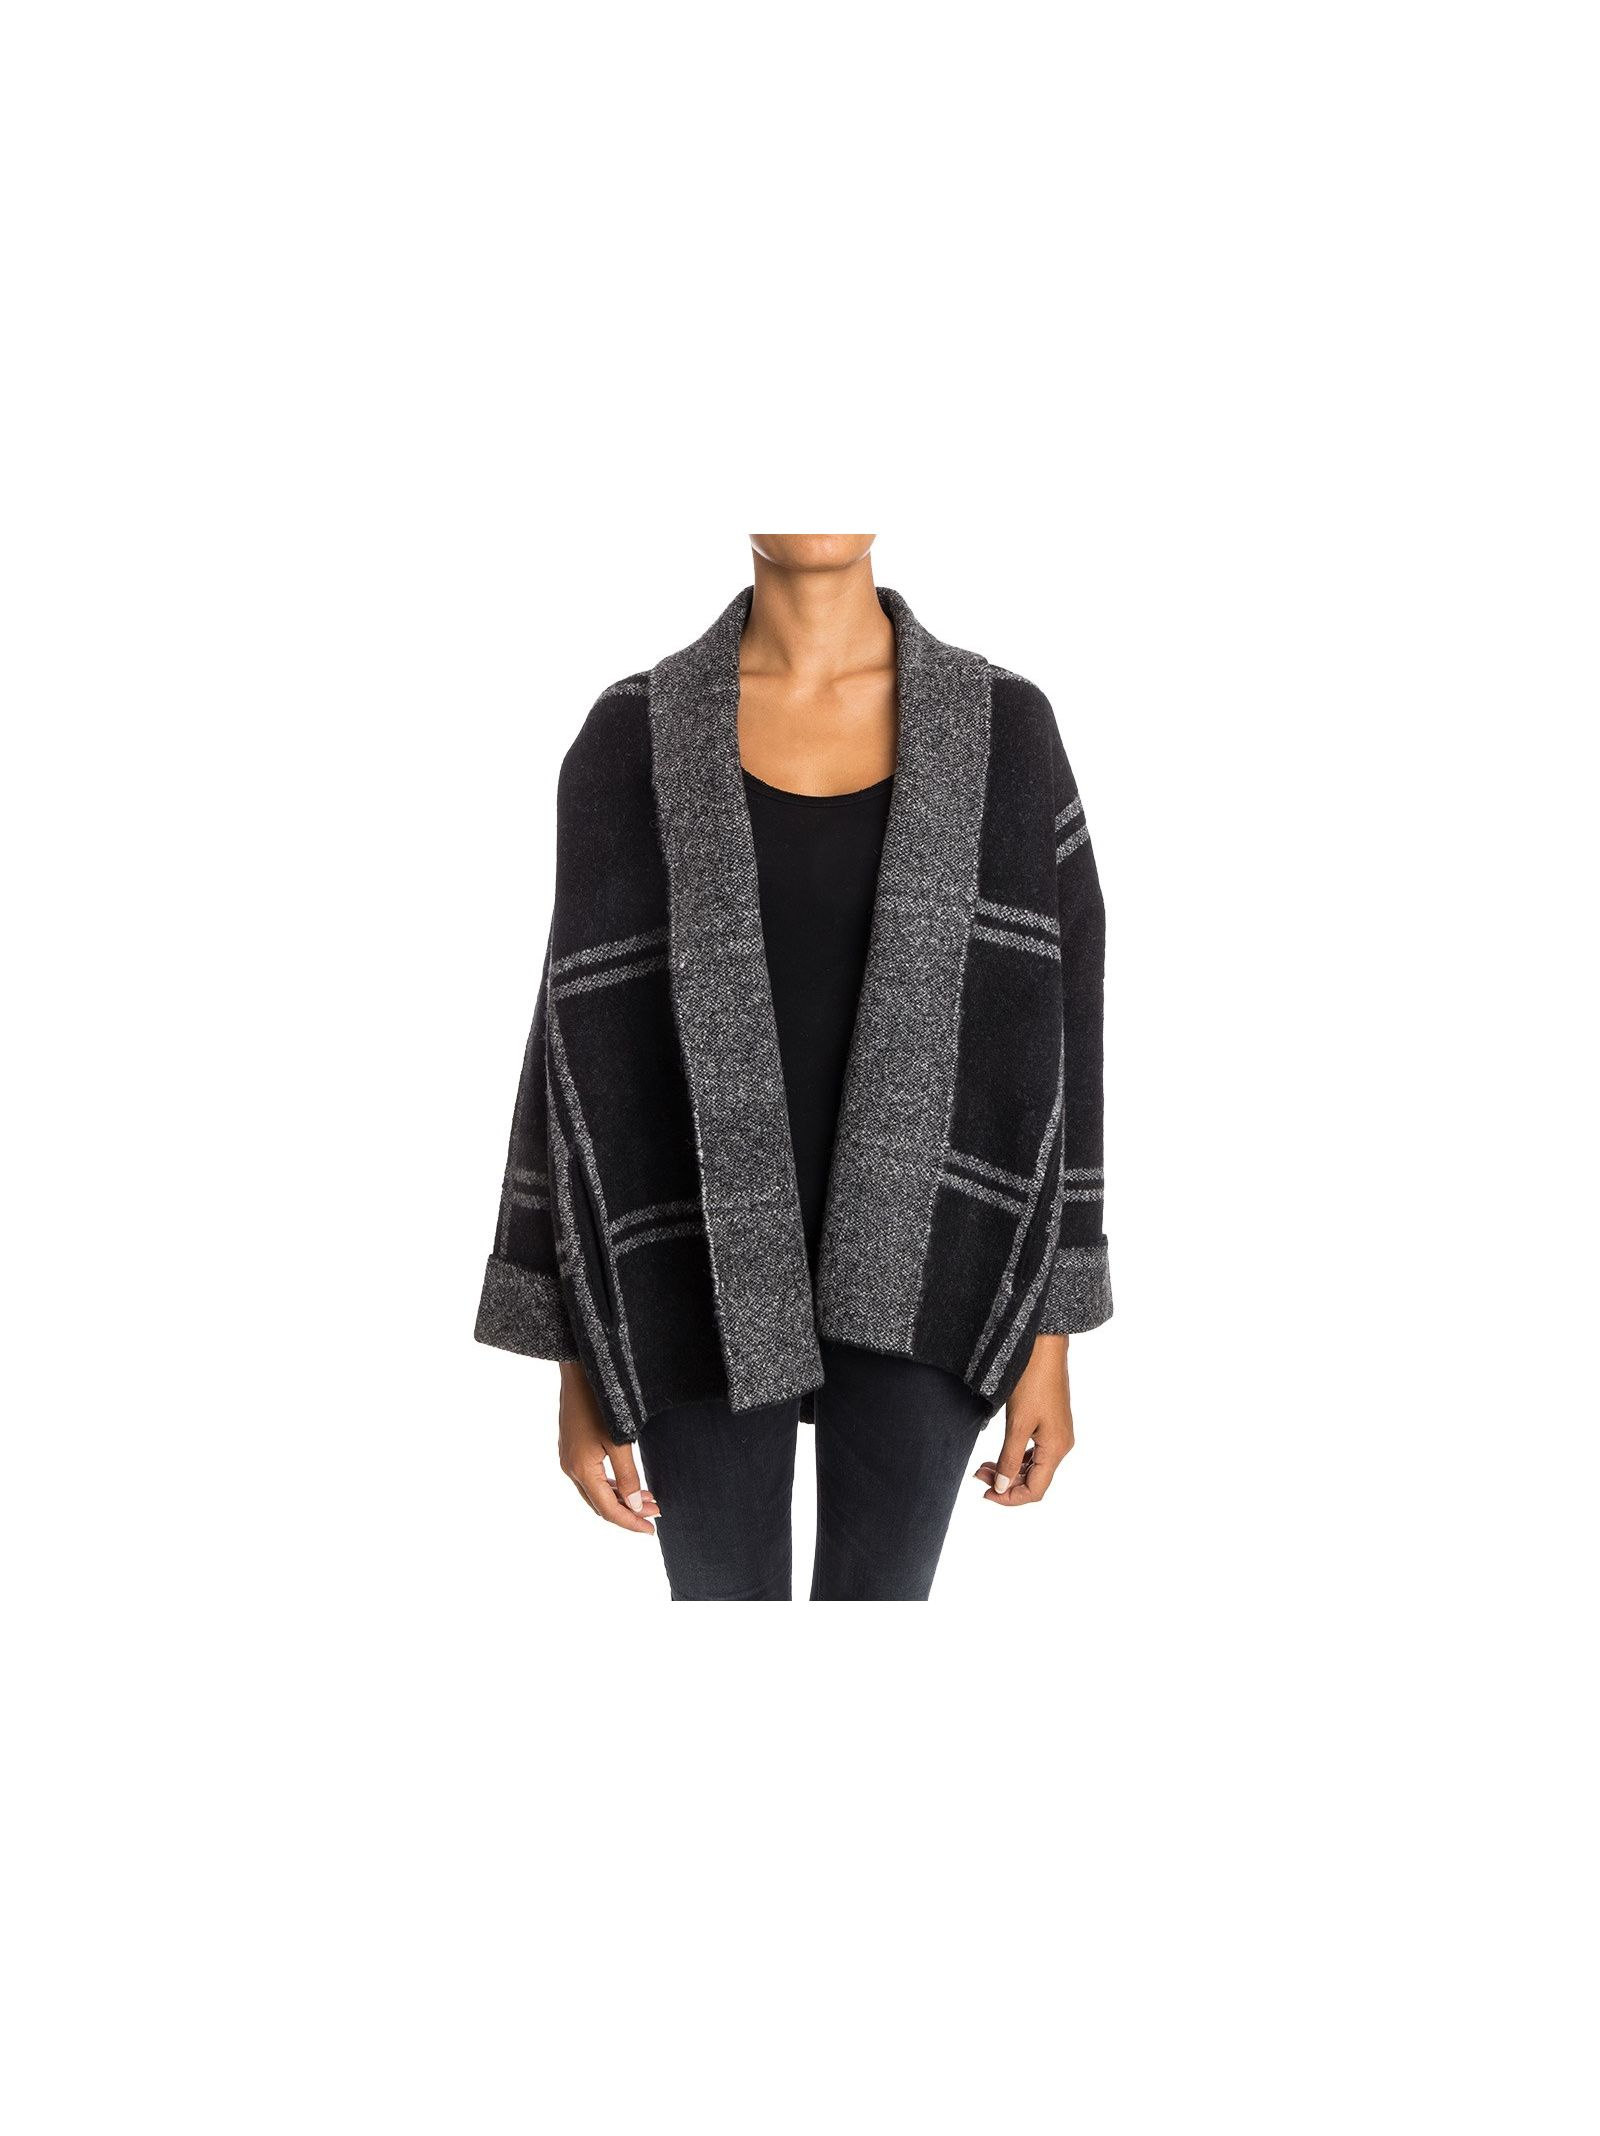 360 Cashmire - Knitted Overcoat - Guineviere